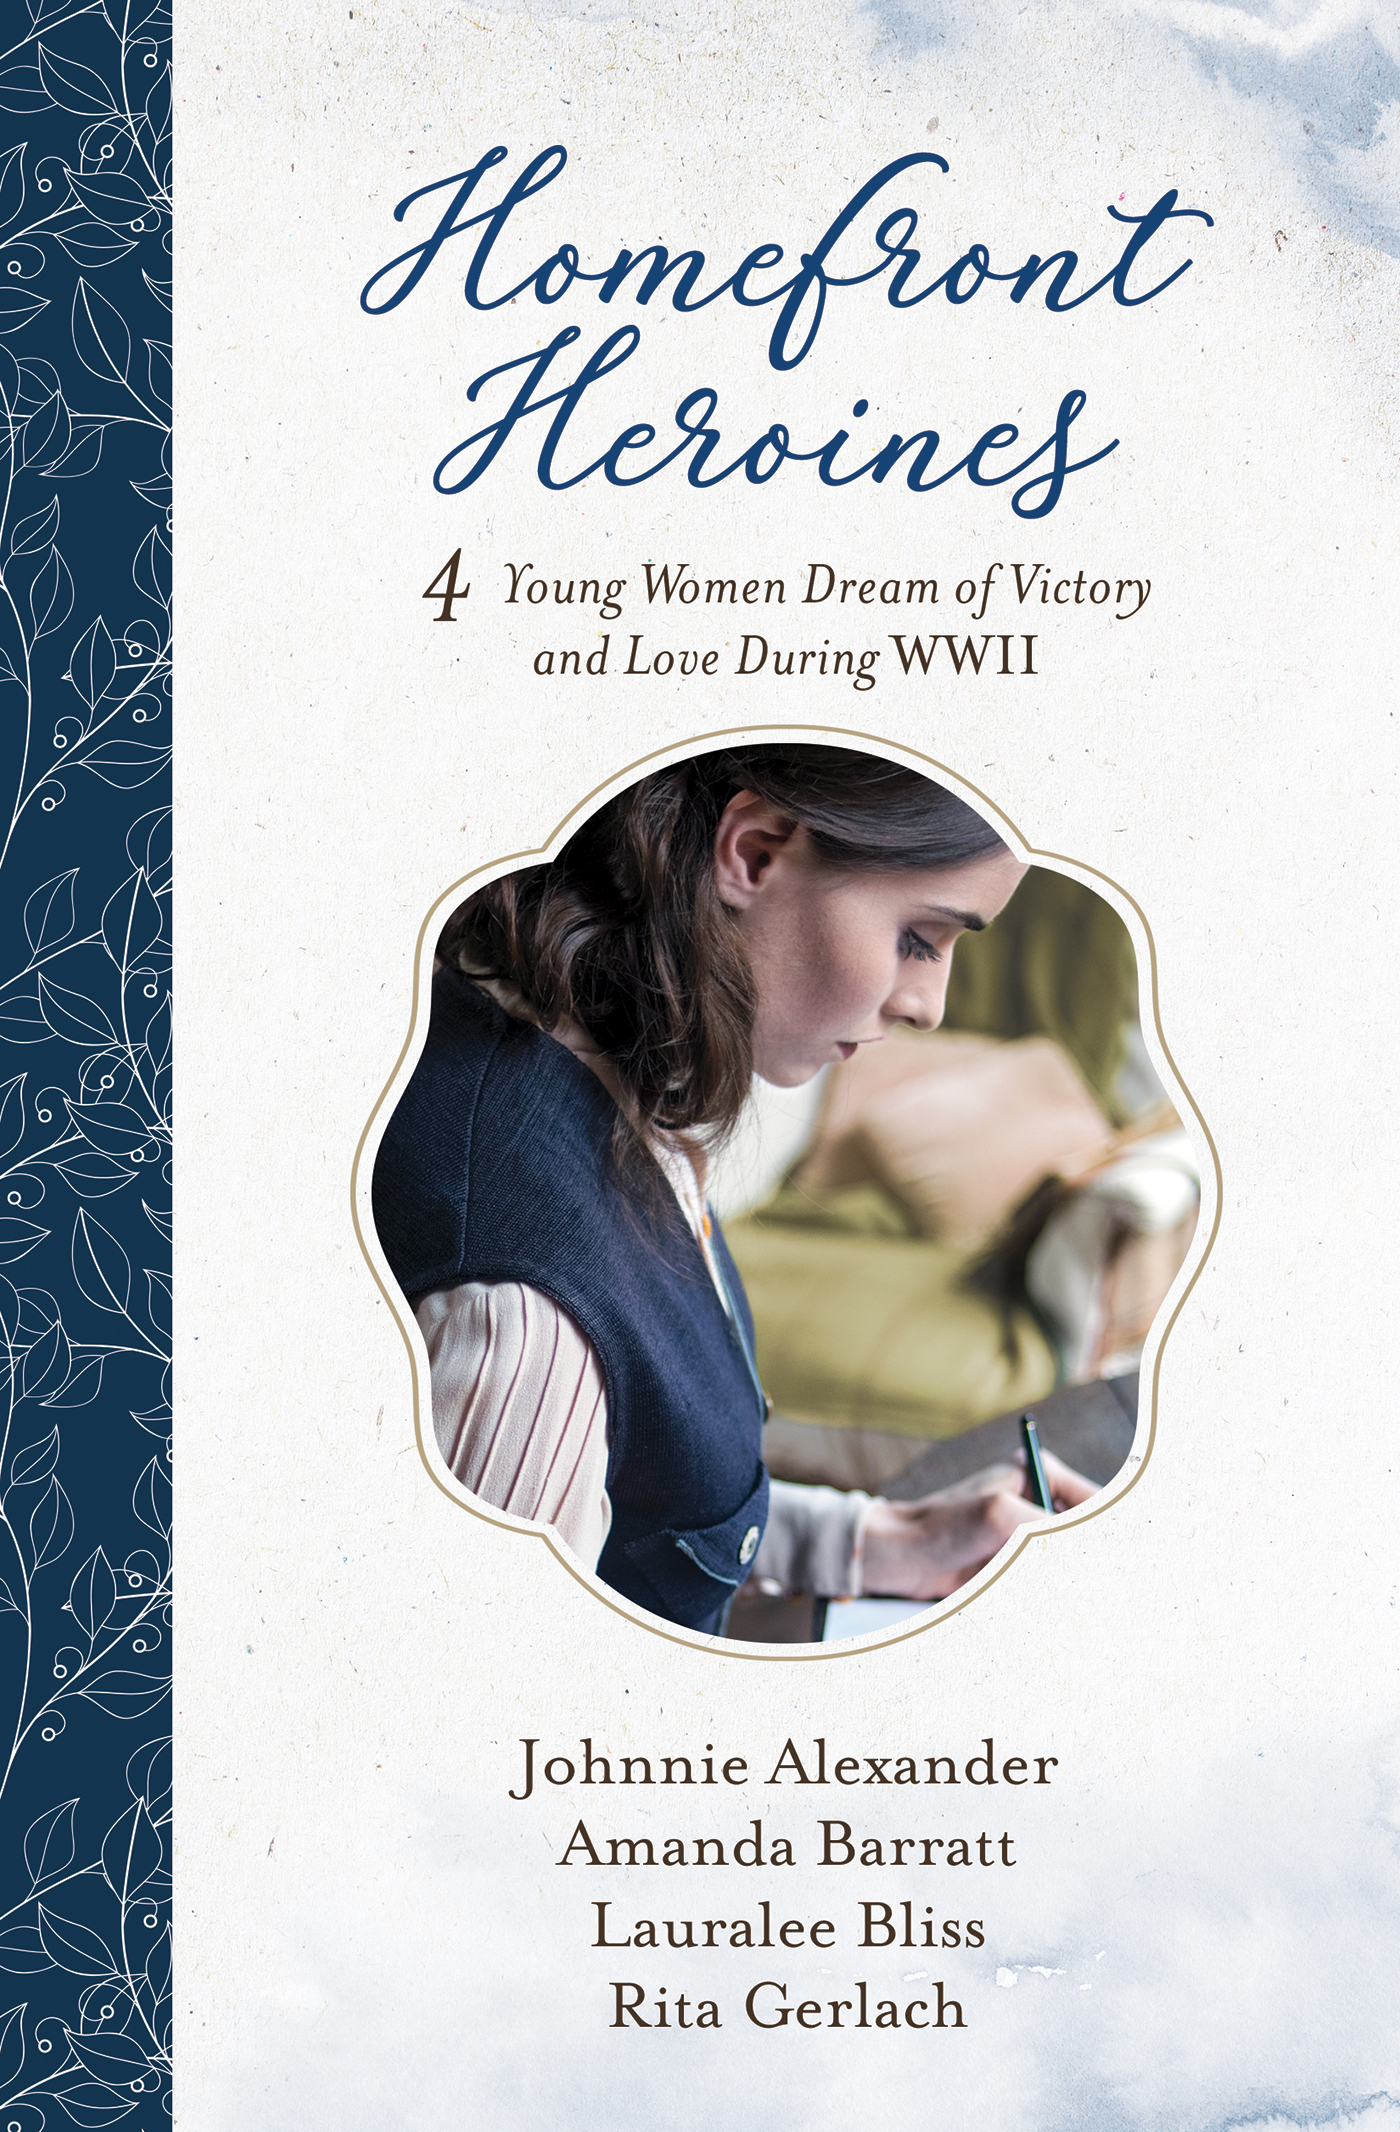 Homefront Heroines: 4 Young Women Dream of Victory and Love During WWII